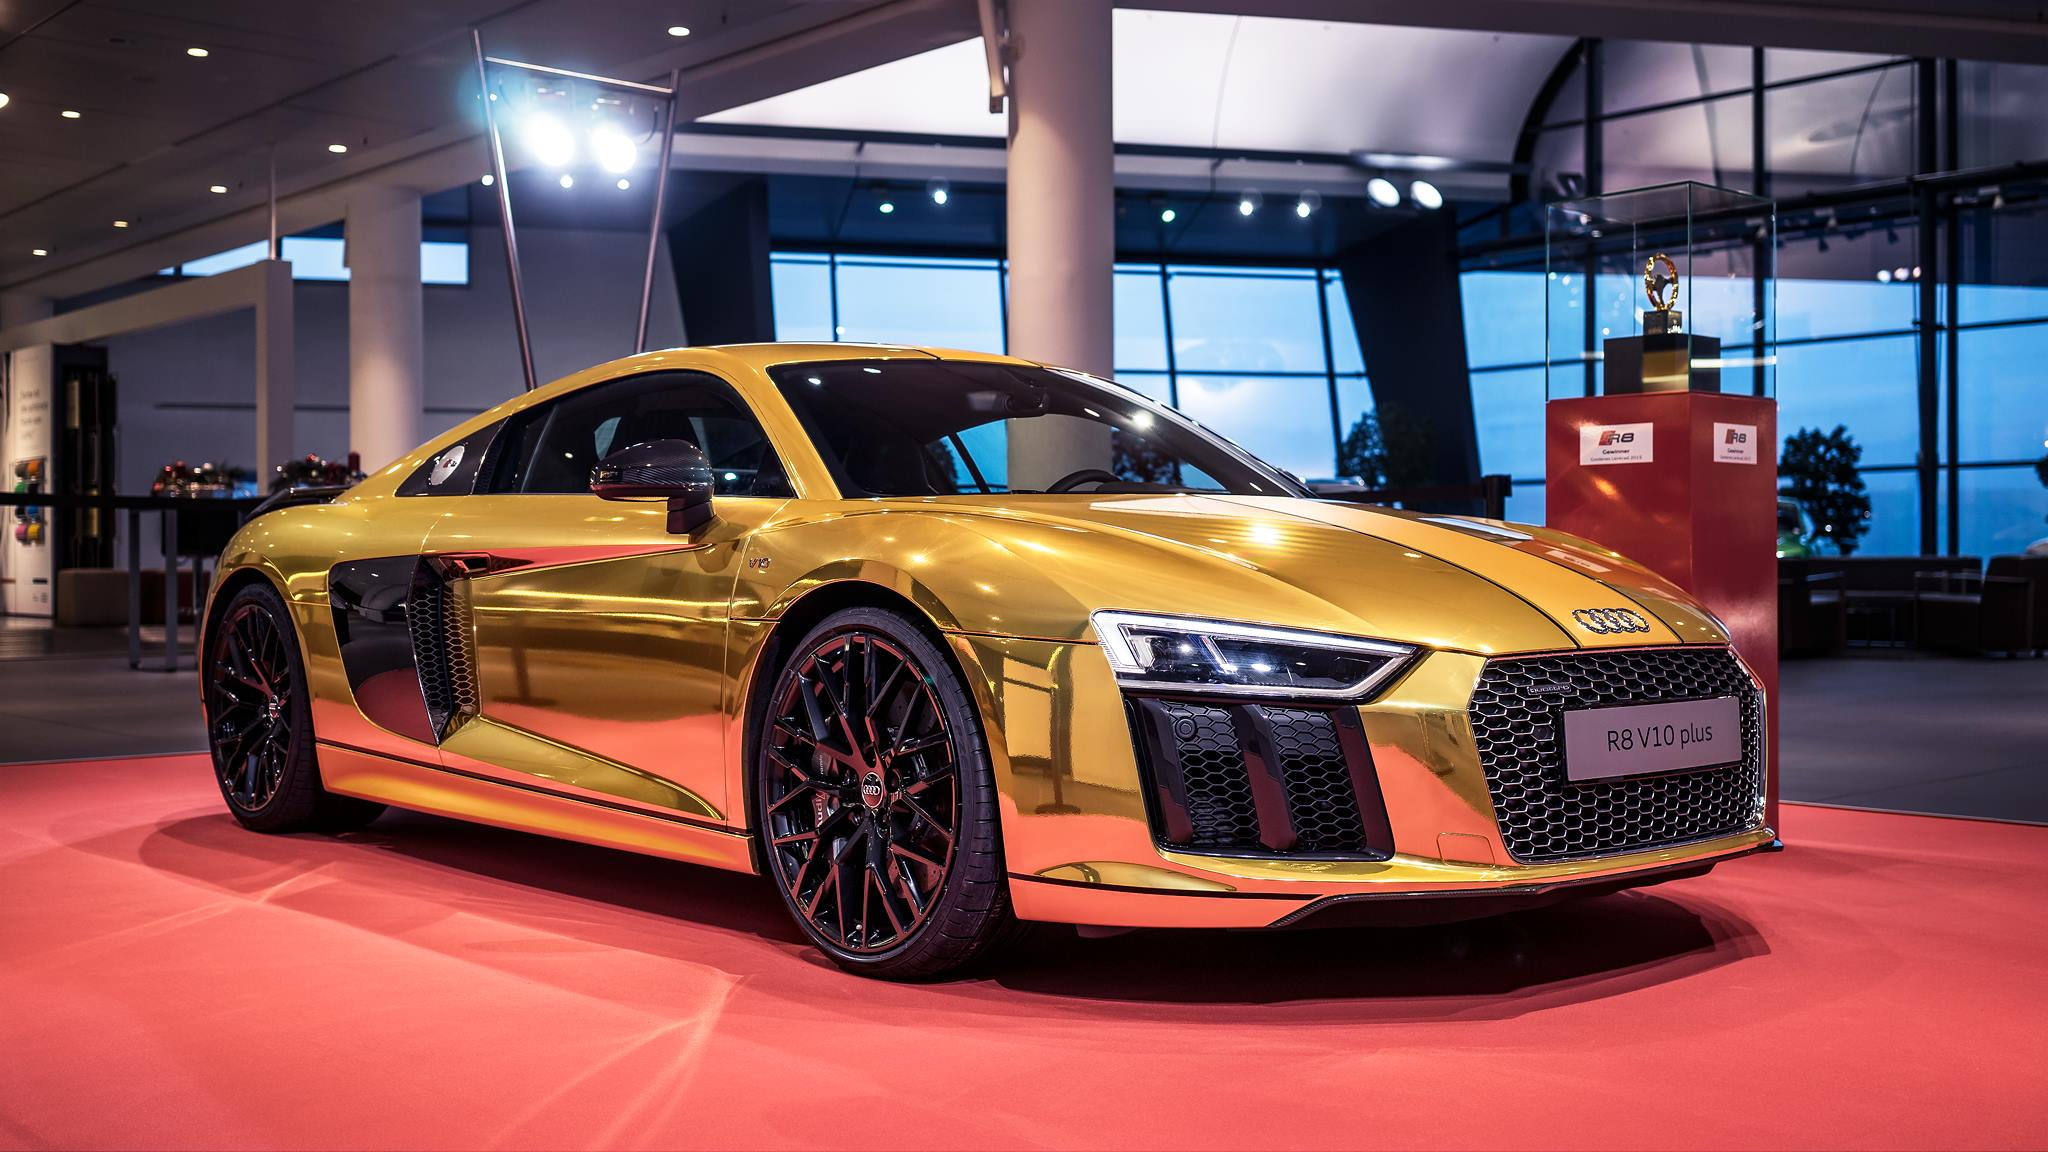 2016 Audi R8 V10 Plus Gets Official Chrome Gold Wrap - autoevolution